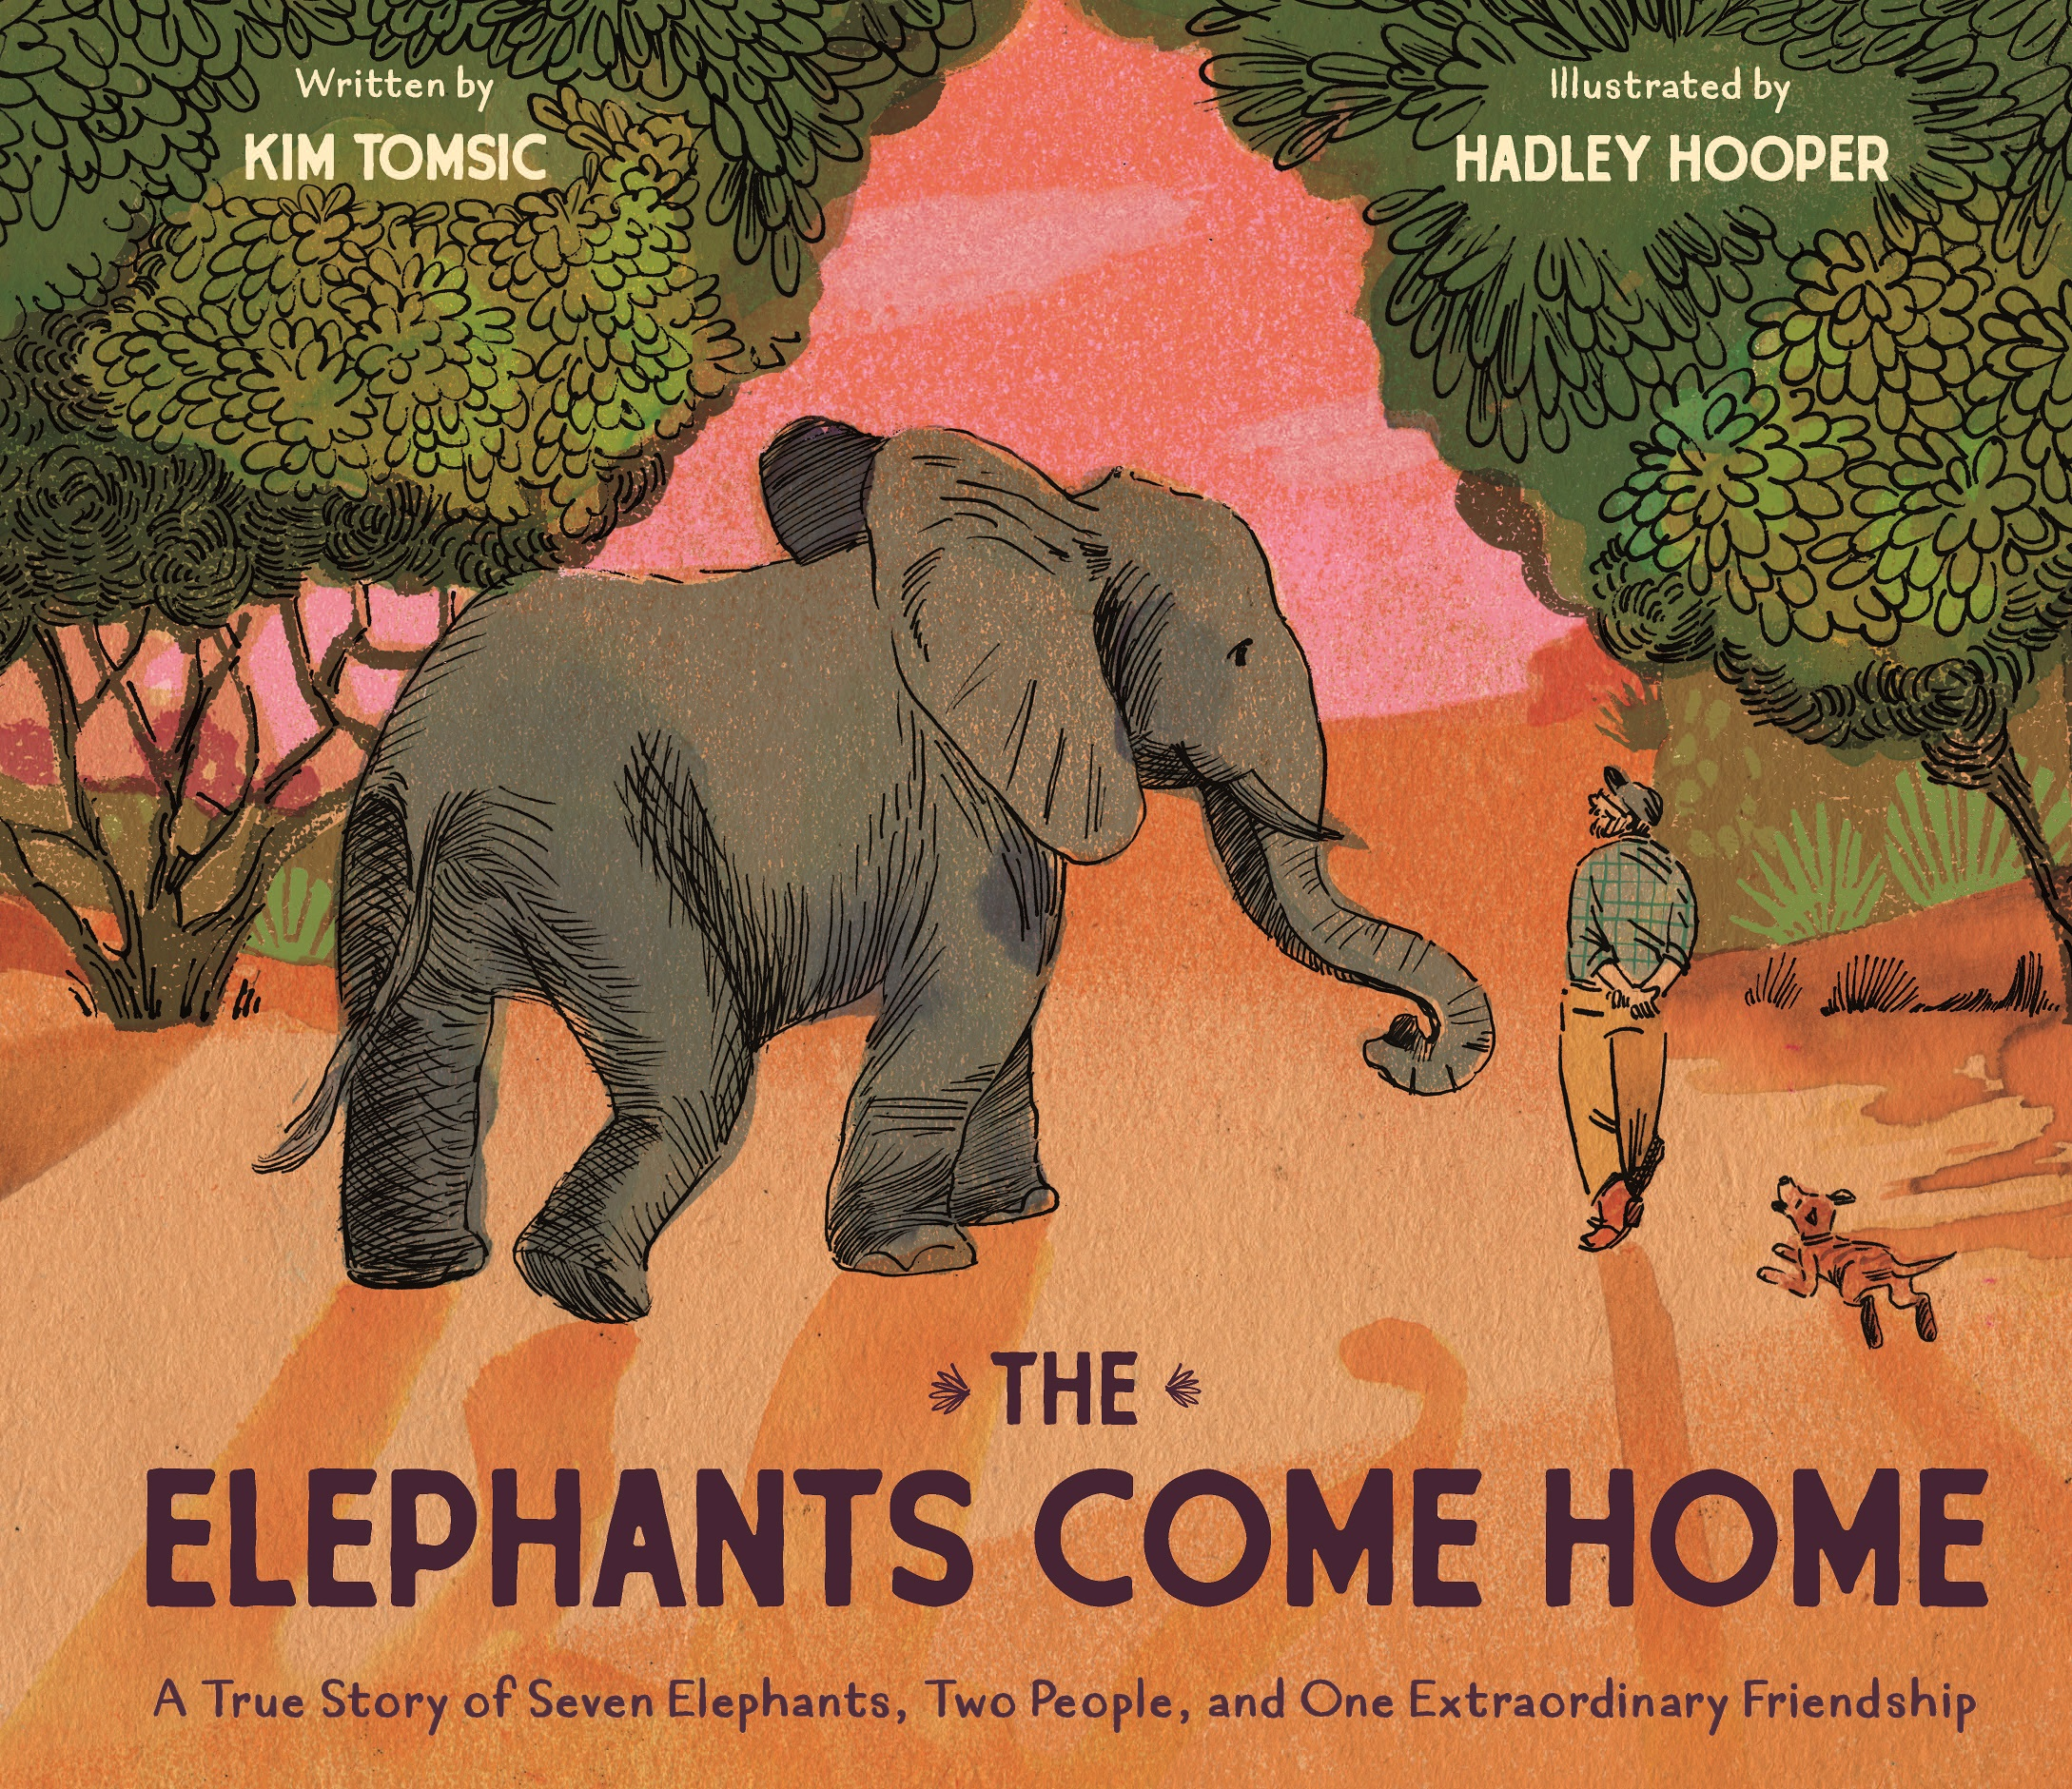 The Elephants Come Home: The True Story of Seven Elephants, Two People, and One Extraordinary Friendship Author: Kim Tomsic Illustrator: Hadley Hooper Publisher Name: Chronicle Books Date of Publication: May 18, 2021